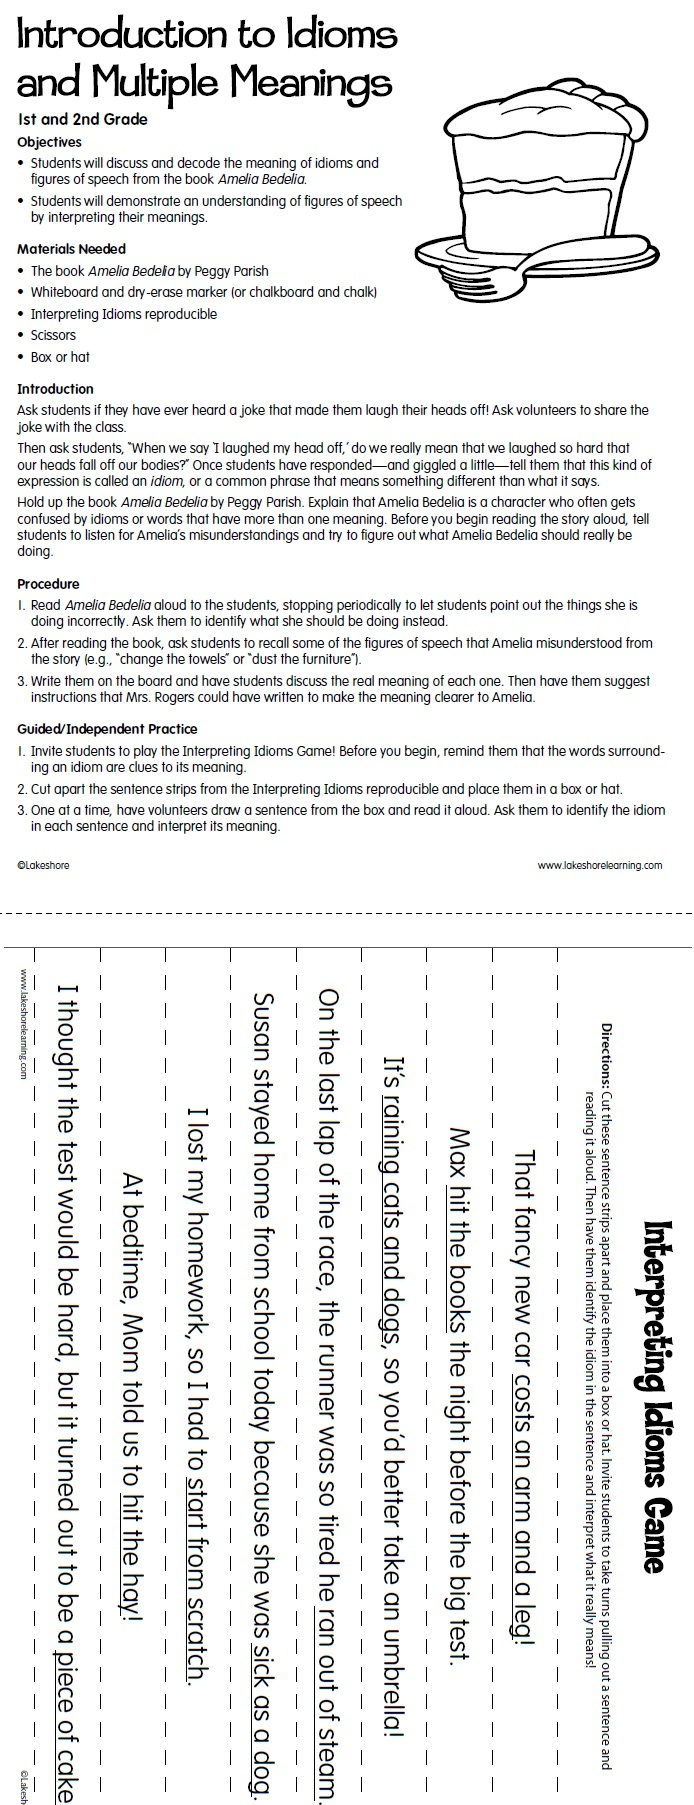 Worksheets Amelia Bedelia Worksheets best 25 amelia bedelia ideas on pinterest childhood lakeshore dream classroom introduction to idioms lesson plan from learning